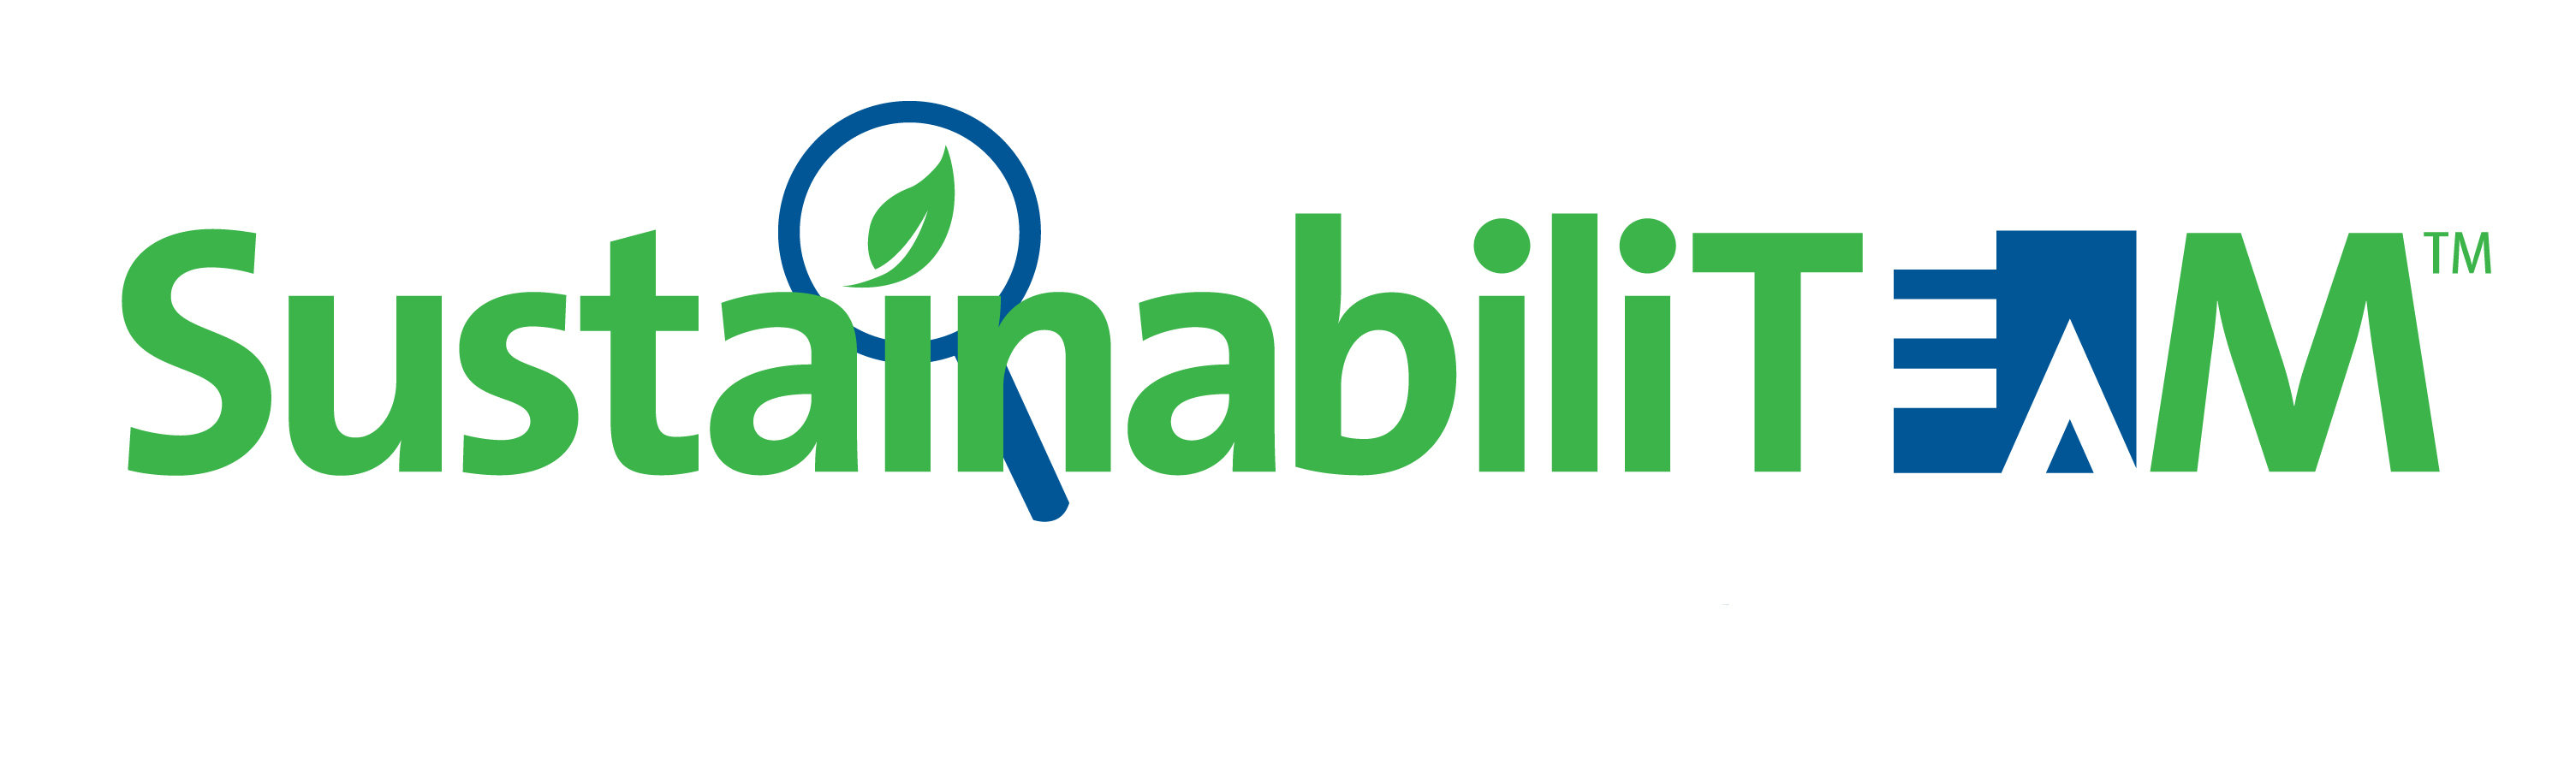 sustainabiliTEAM Logo